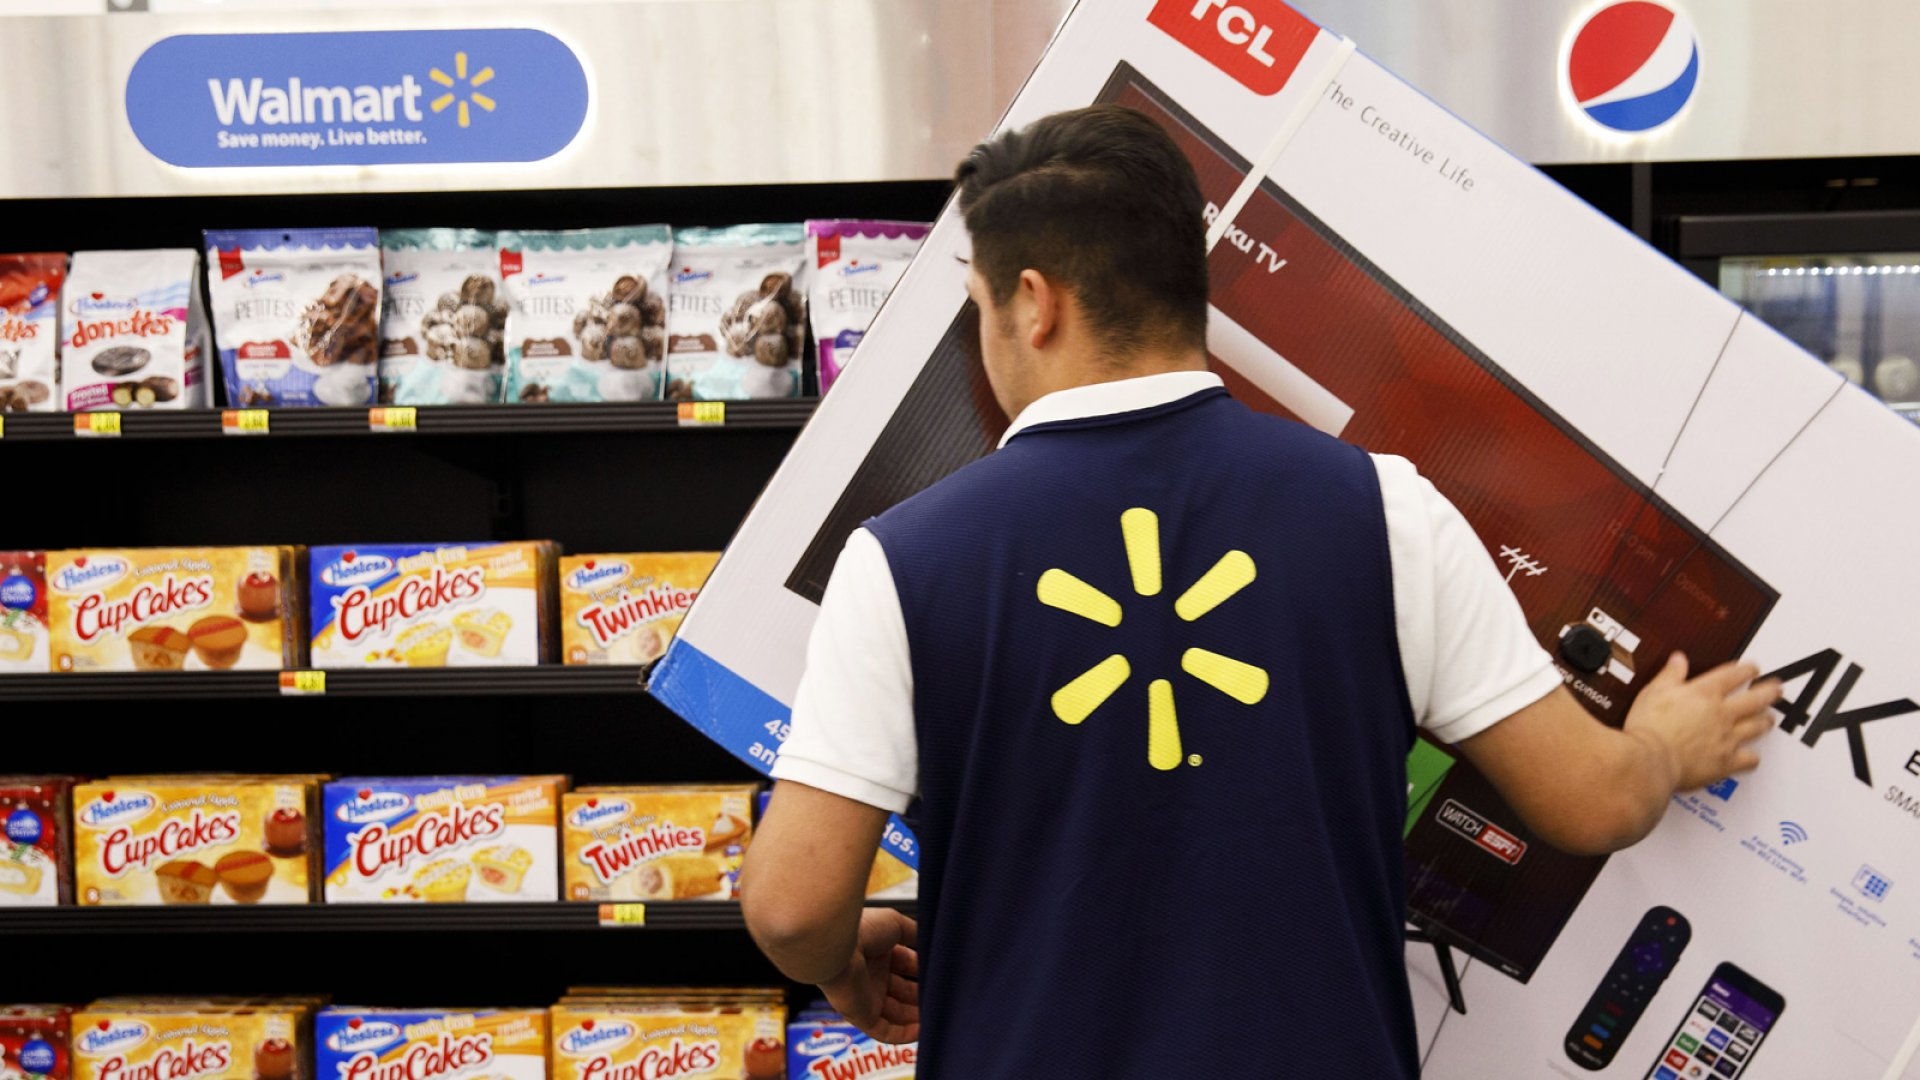 Amazon Is Losing Loyal Shoppers to Walmart. Here's What to Watch for This Holiday Season